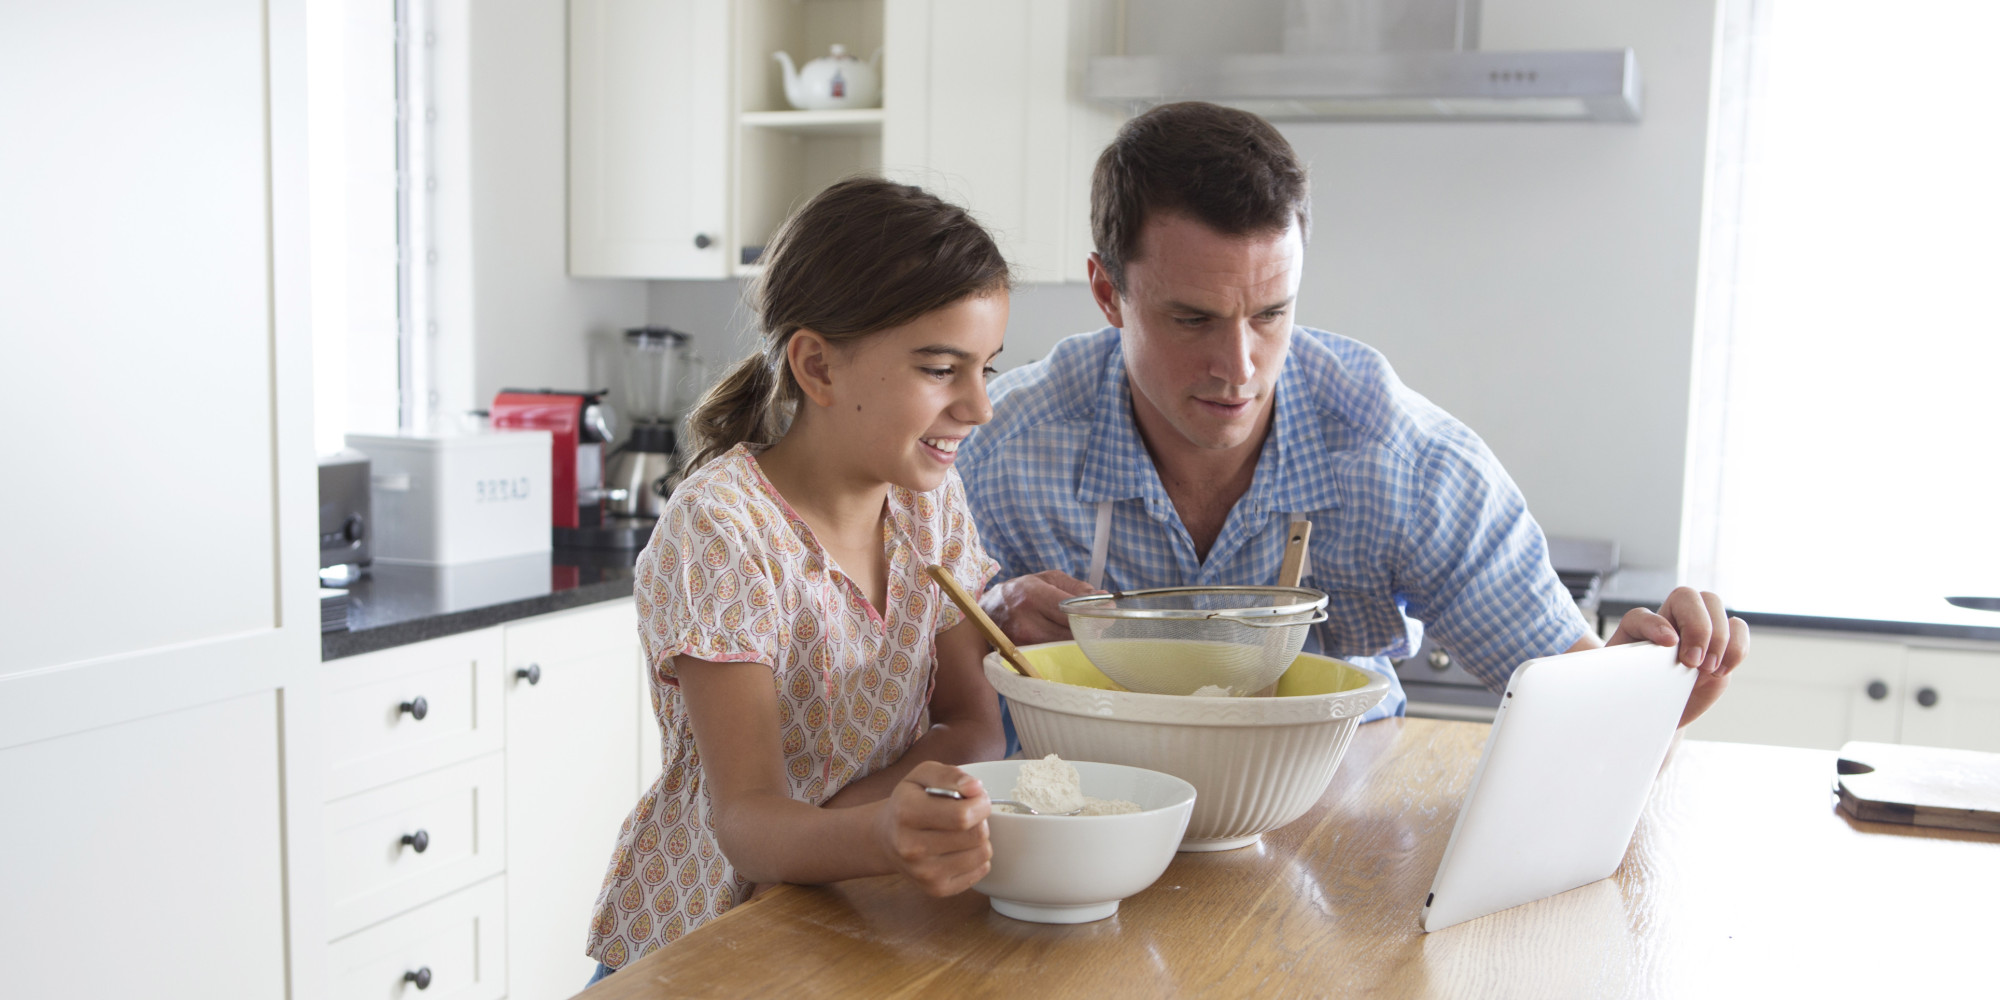 Father and daughter cooking in their kitchen